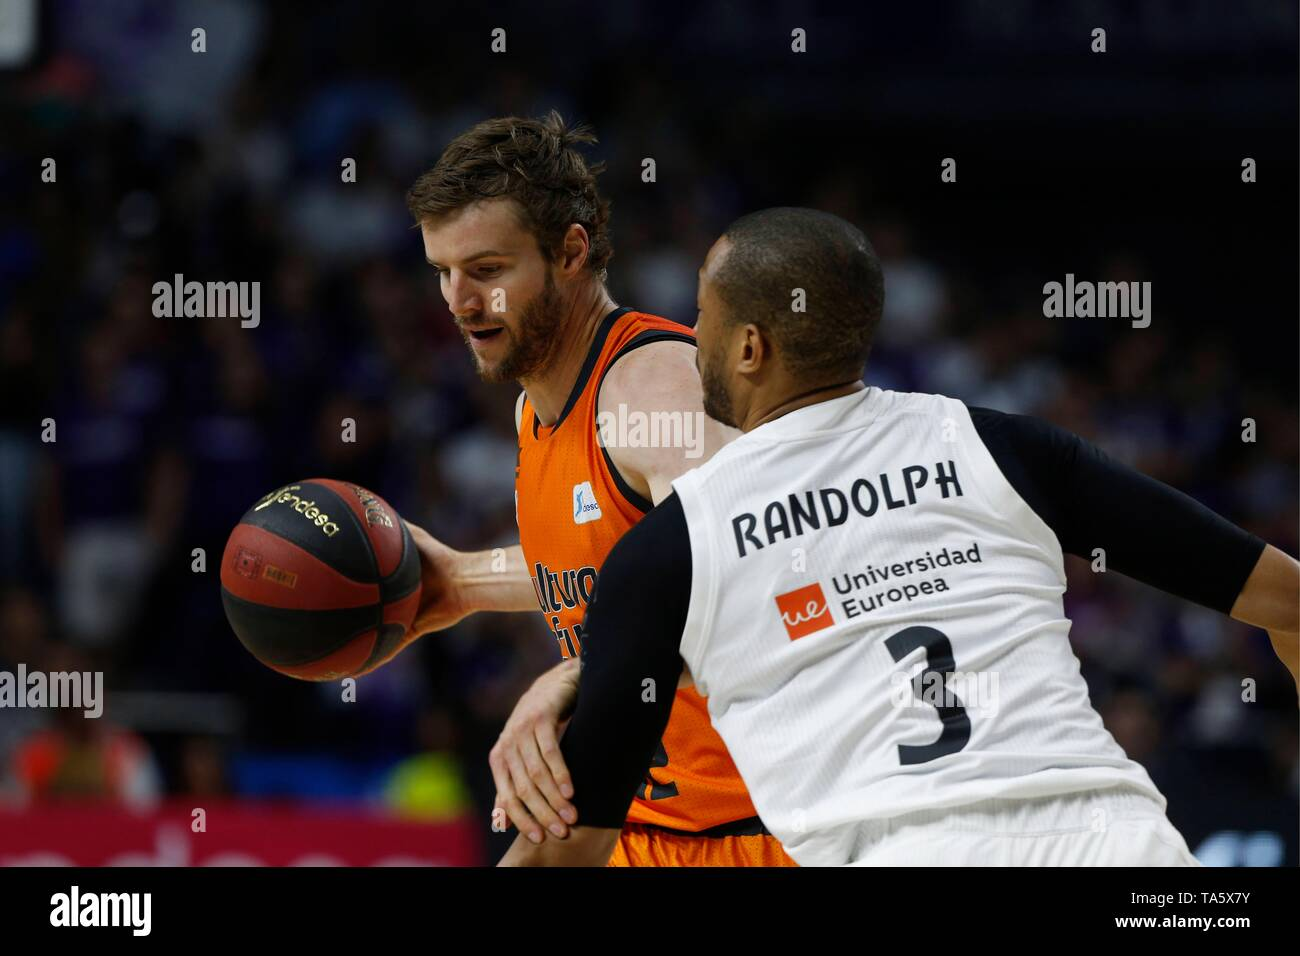 Real Madrid Vs Valencia Basket League Match 21 05 19 Madrid Spain